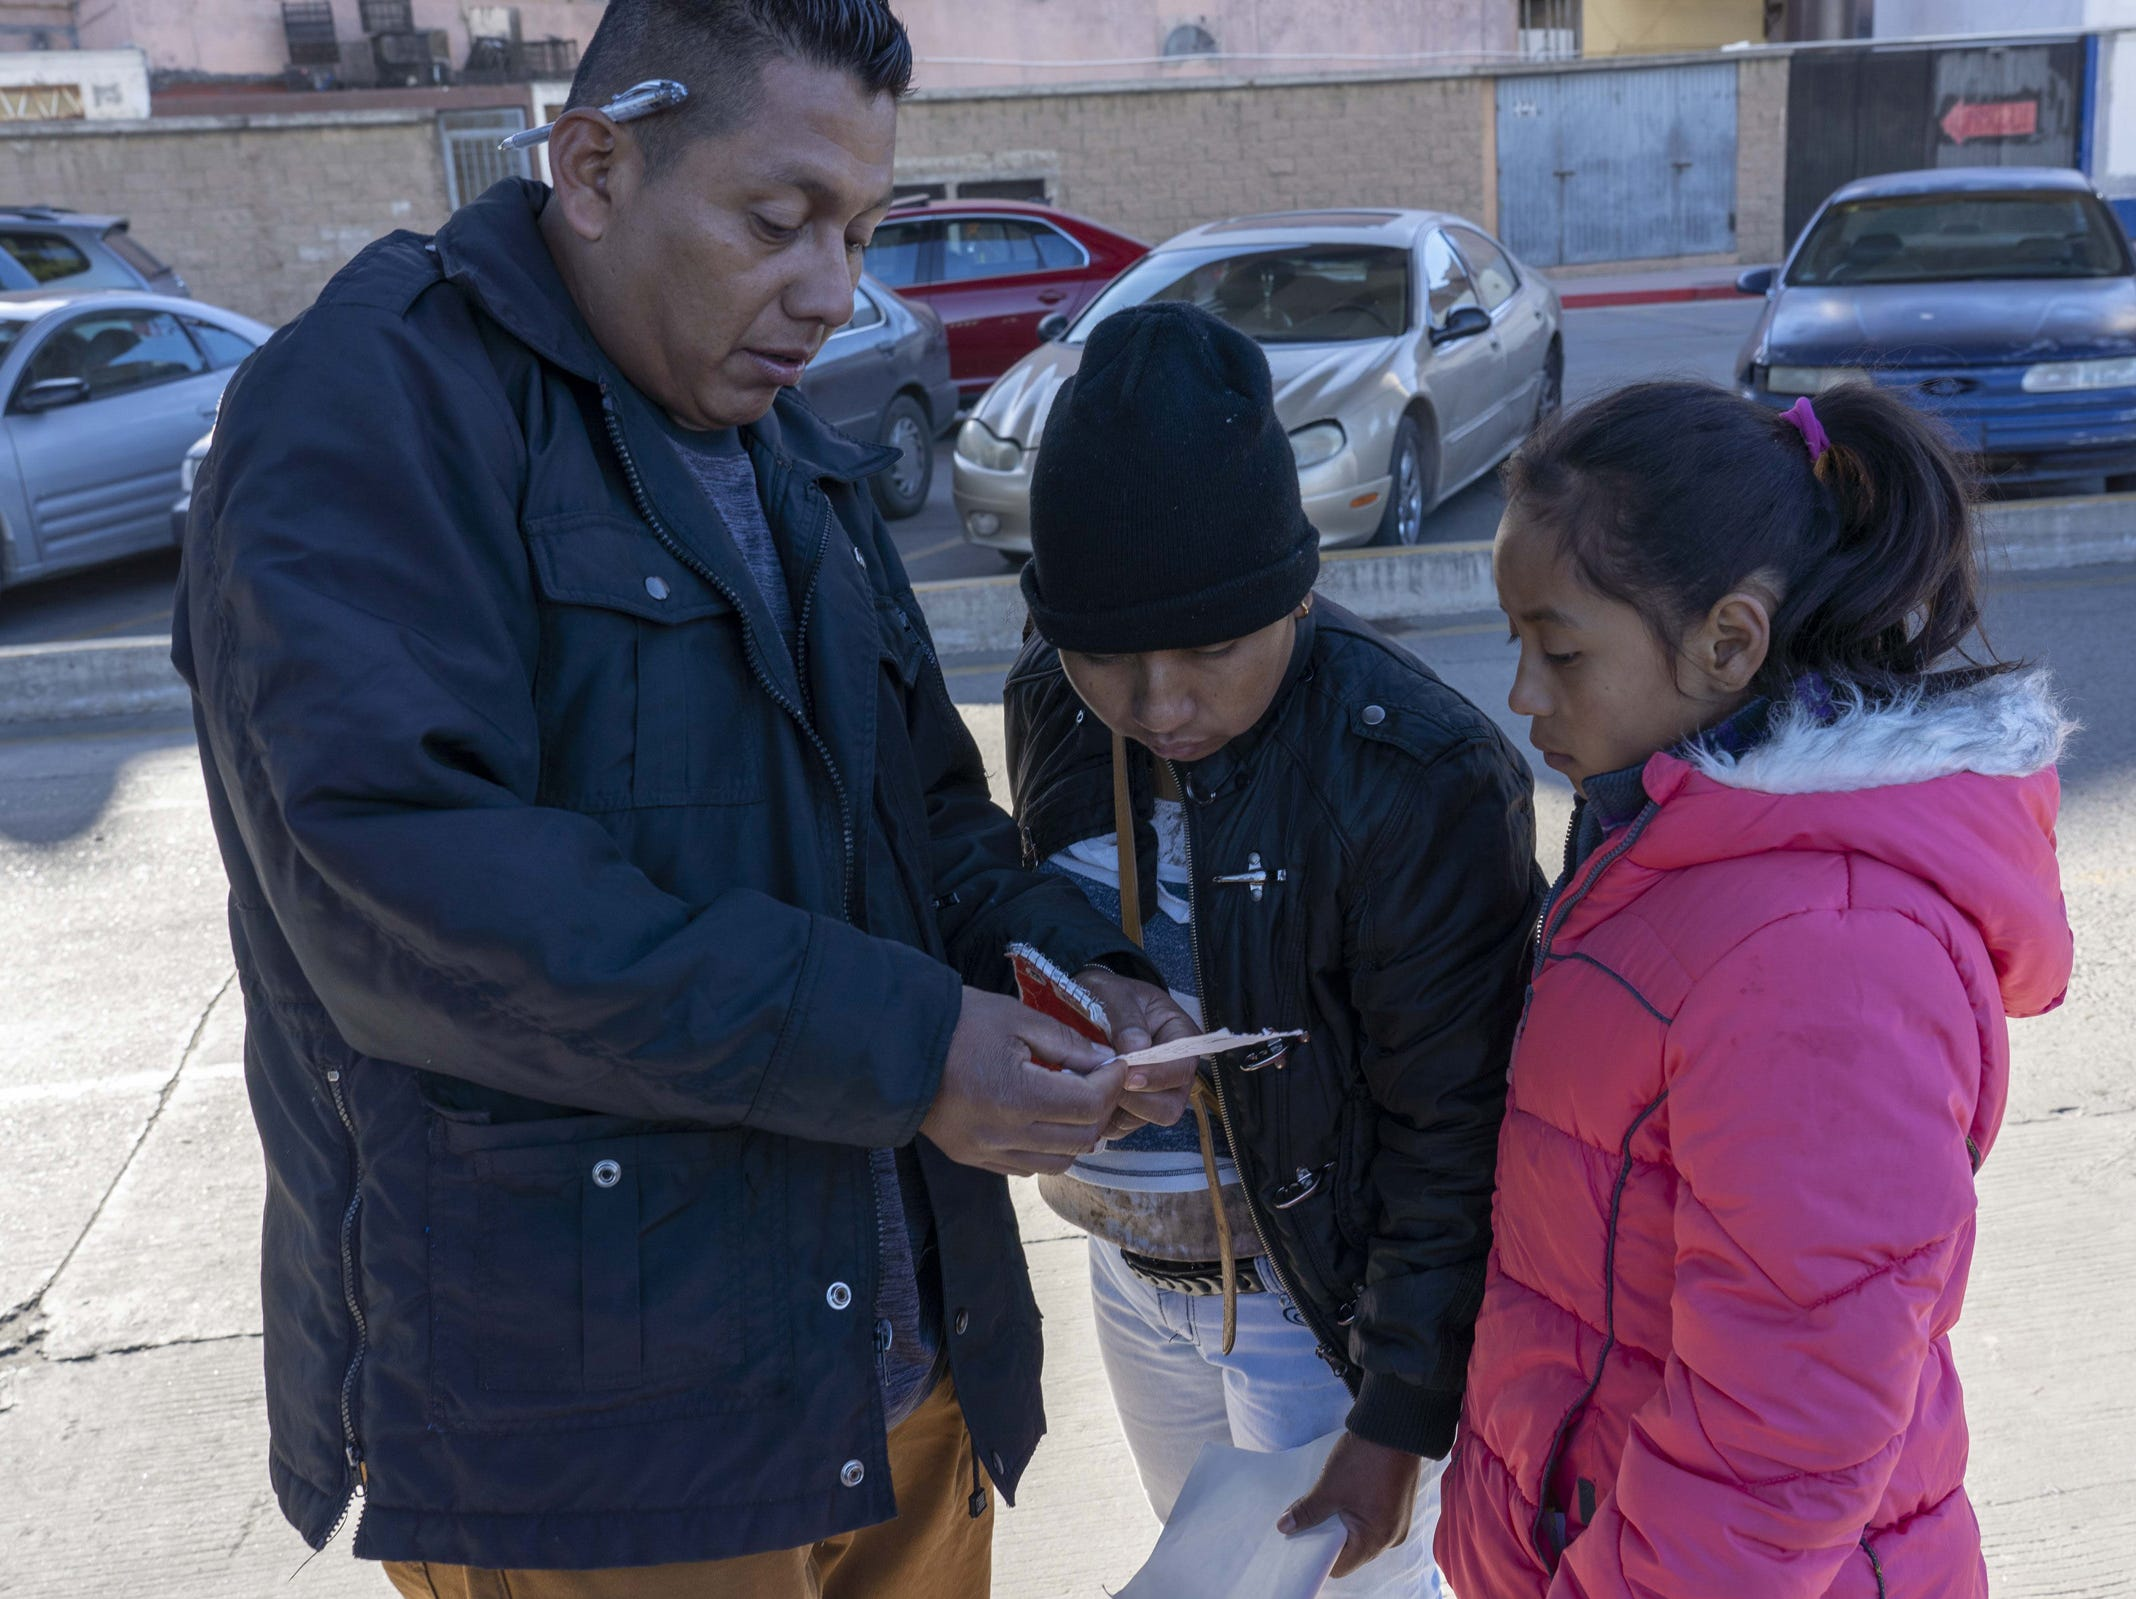 Omar Rivera Martinez and his family of five traveled to Tijuana with a large caravan in November. On Feb. 7, 2019, he was just one day away from having his family's number called to meet with U.S. immigration officials and claim asylum in the United States.